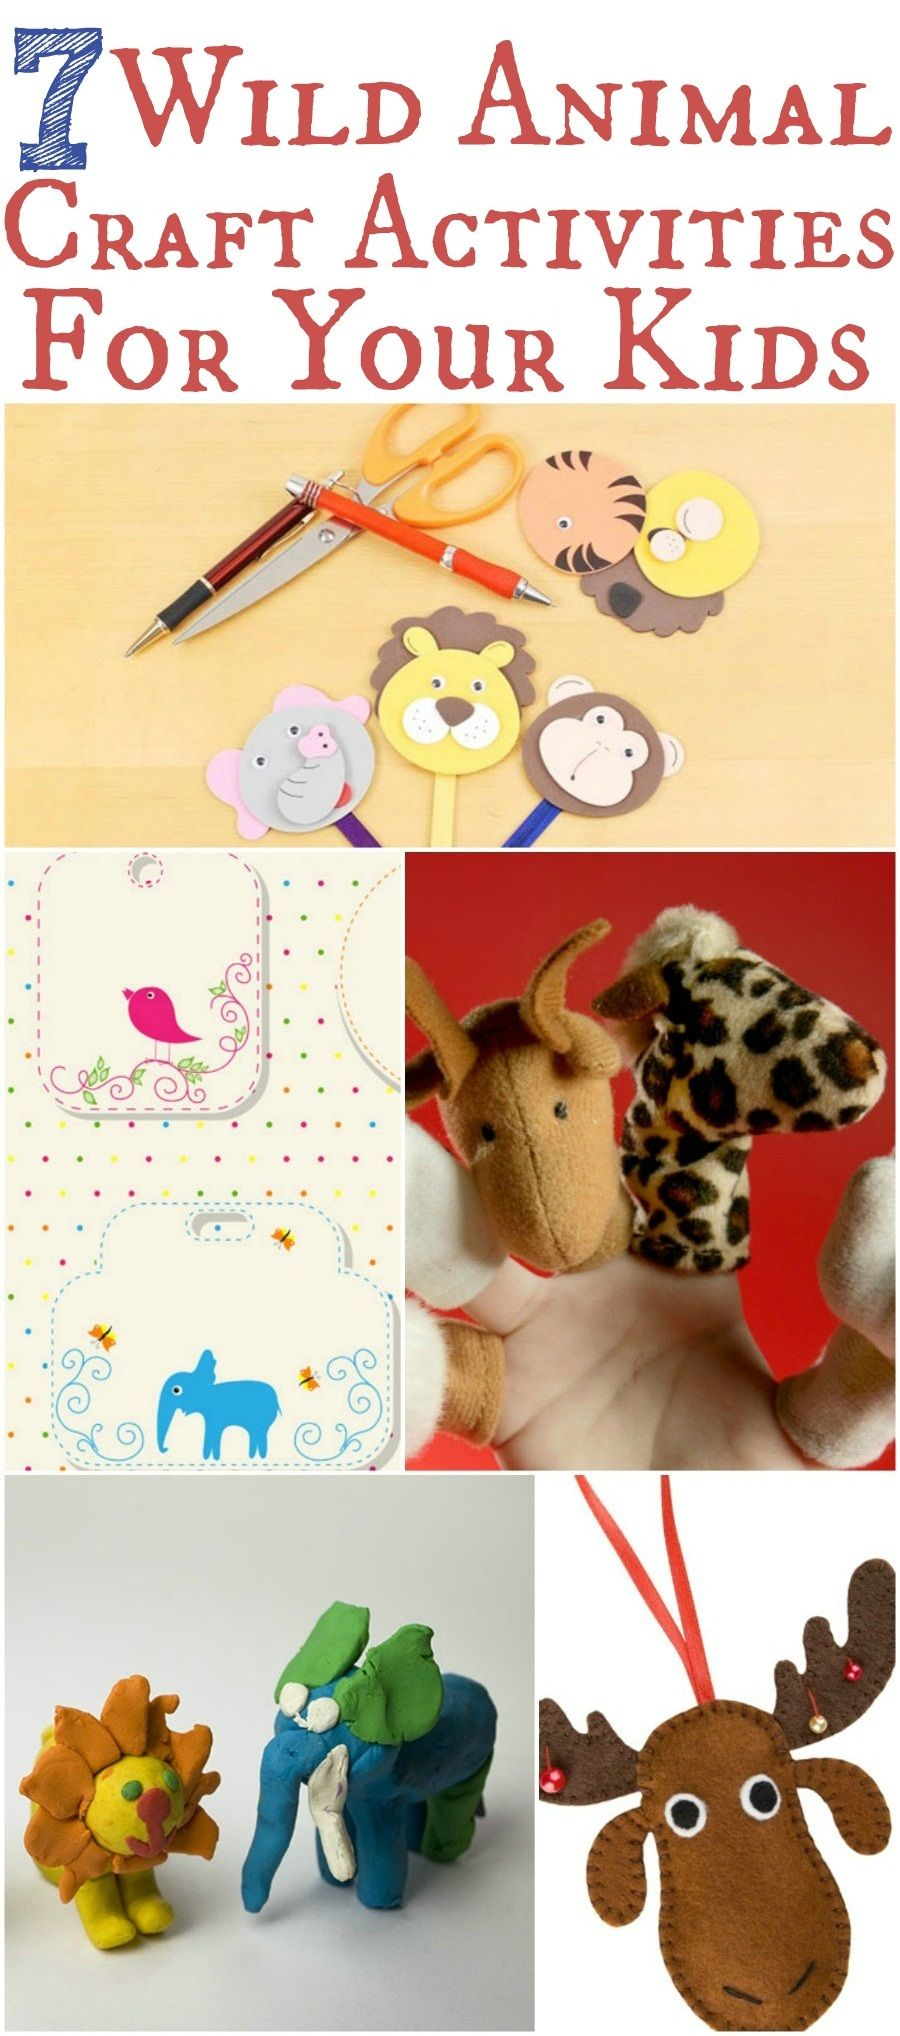 15 Easytomake Animal Crafts For Kids Animal crafts for